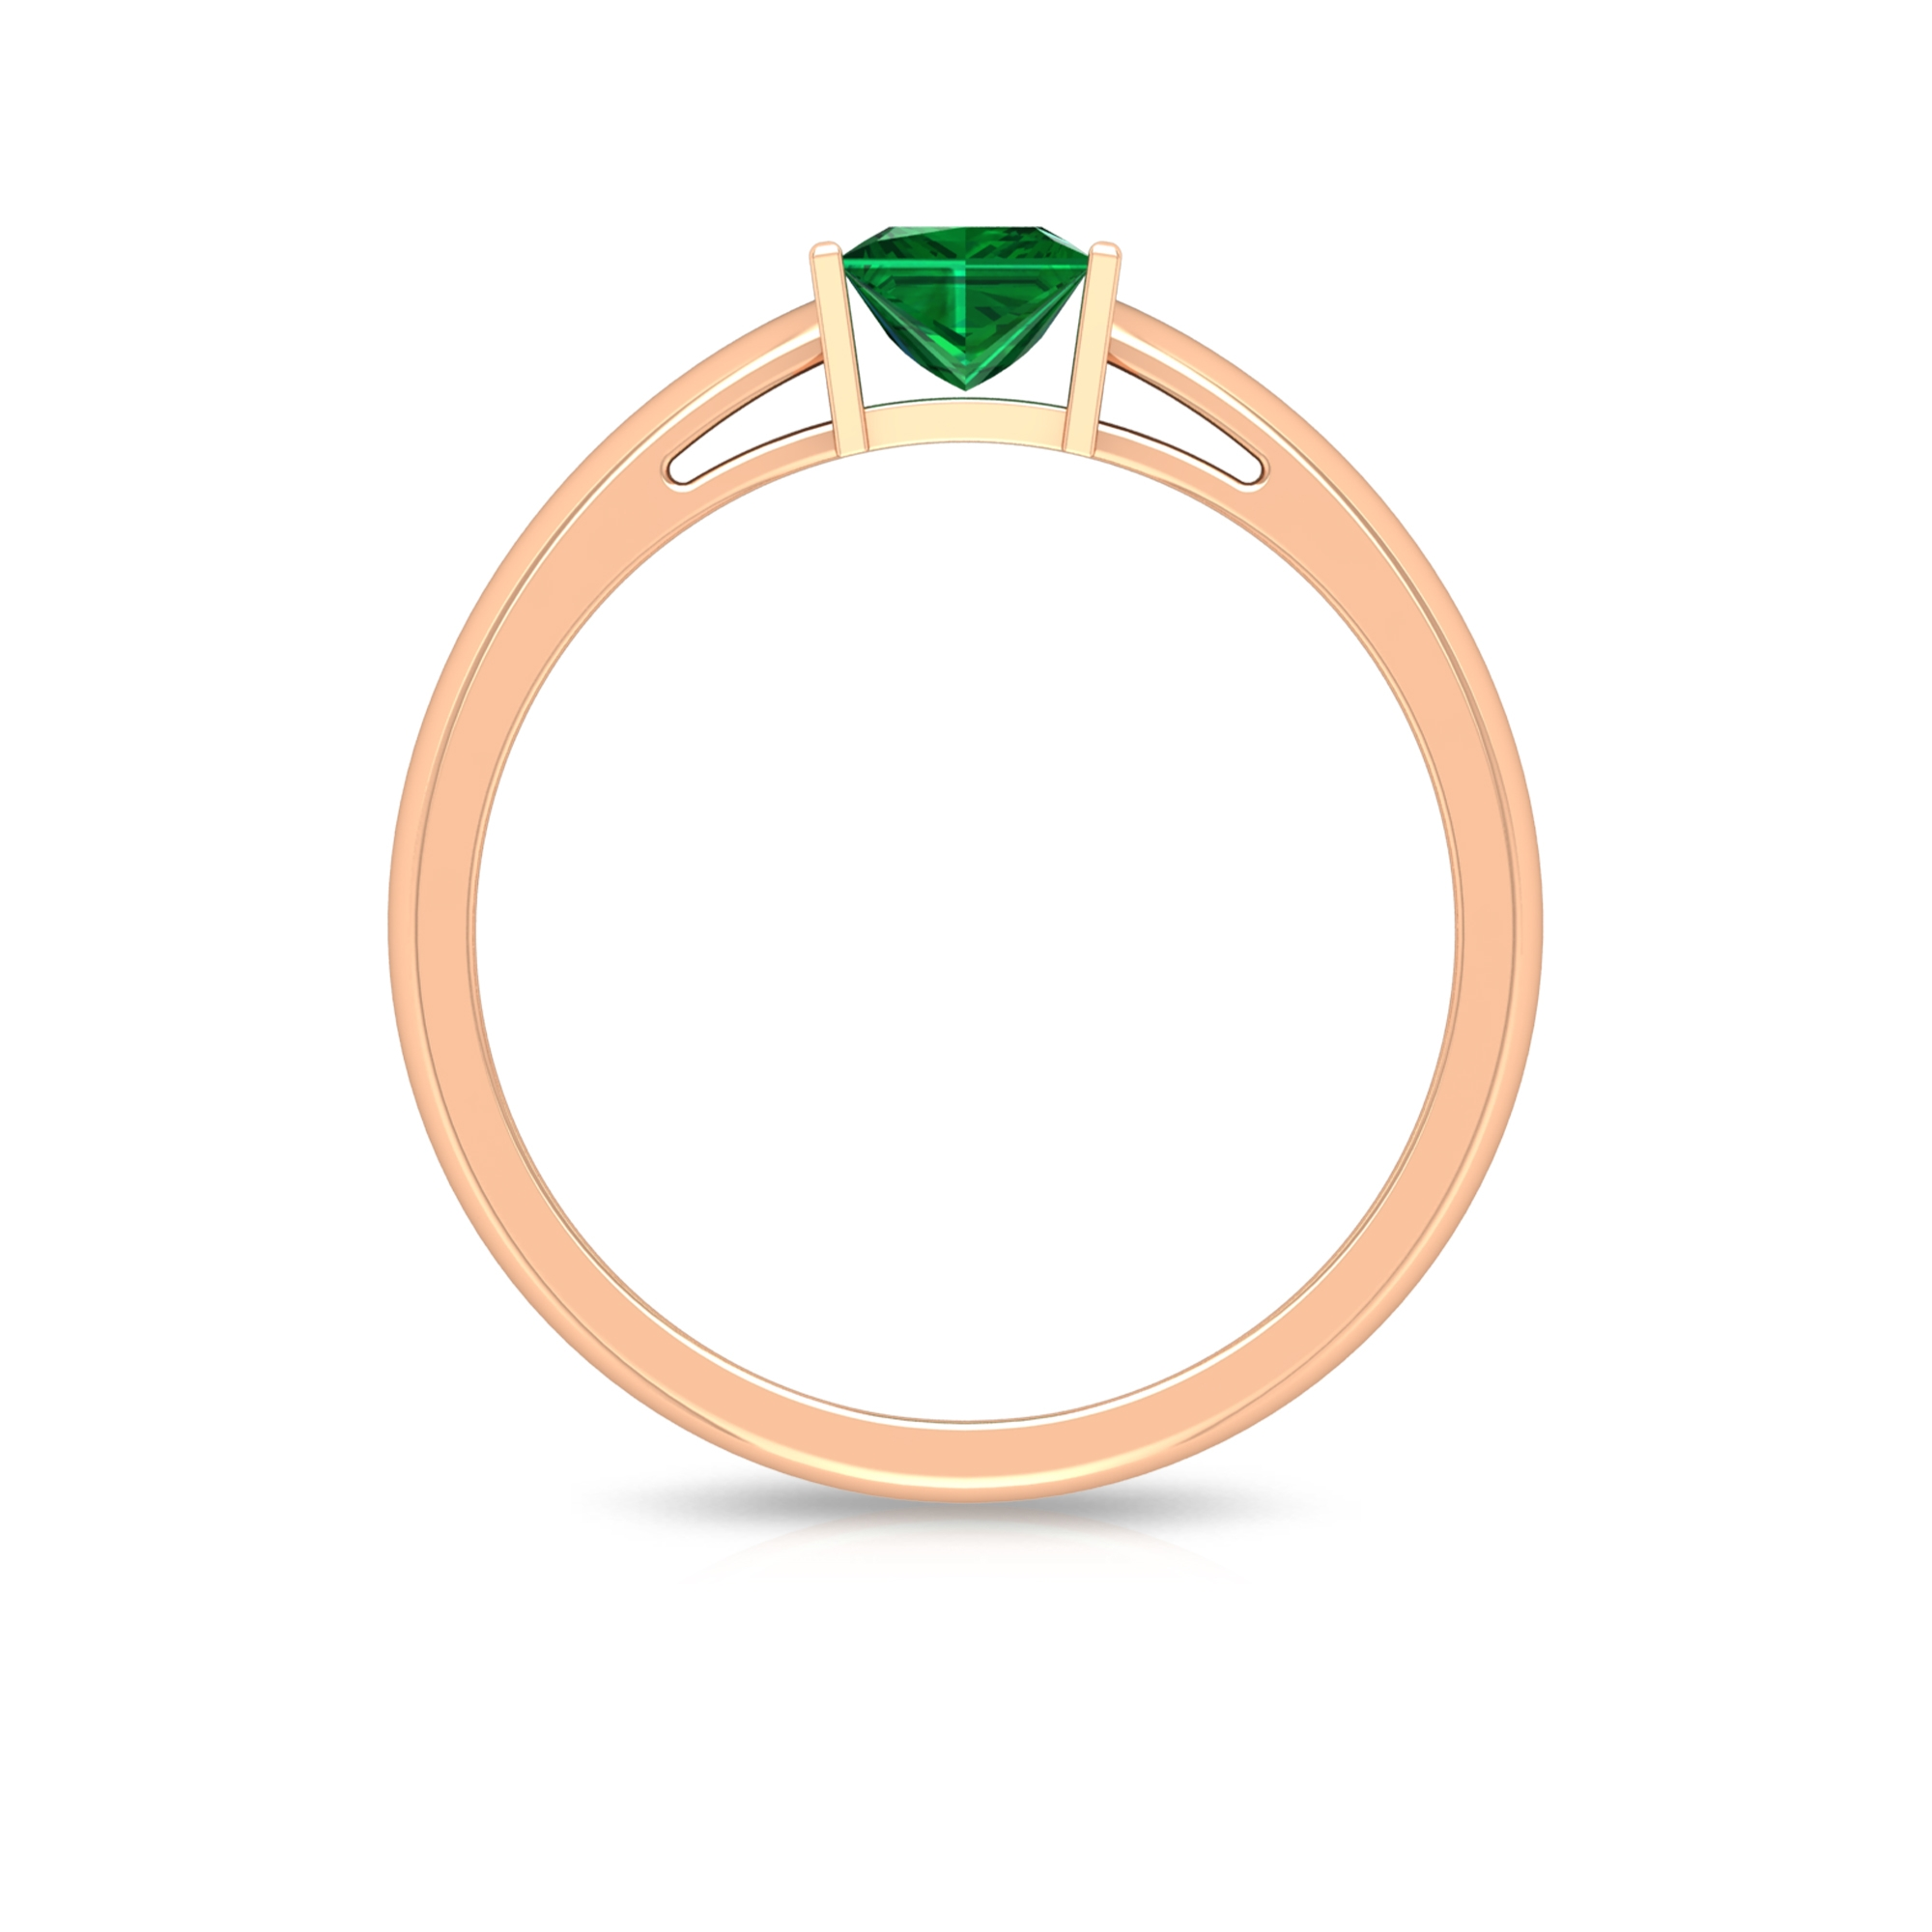 4.5 MM Princess Cut Emerald Solitaire Ring in Bar Setting